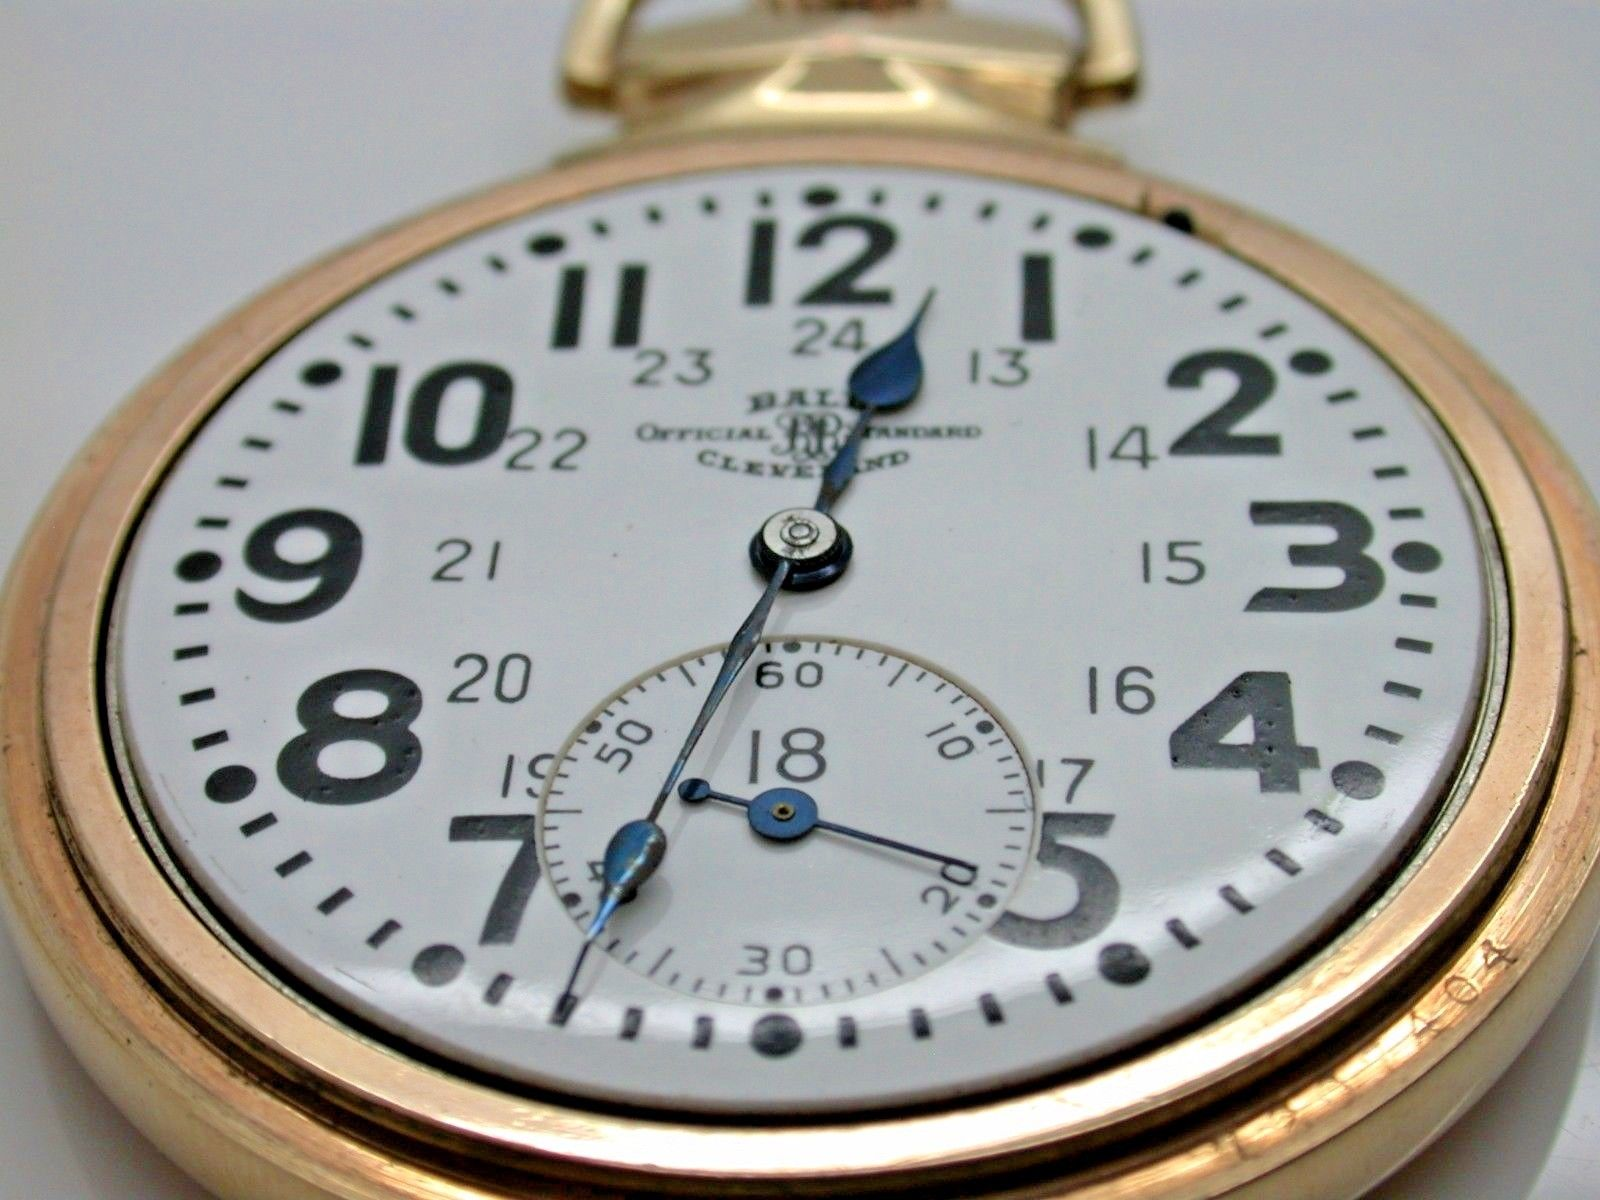 by gold official filled ball antique standard waltham jewels watches watch products pocket railroad